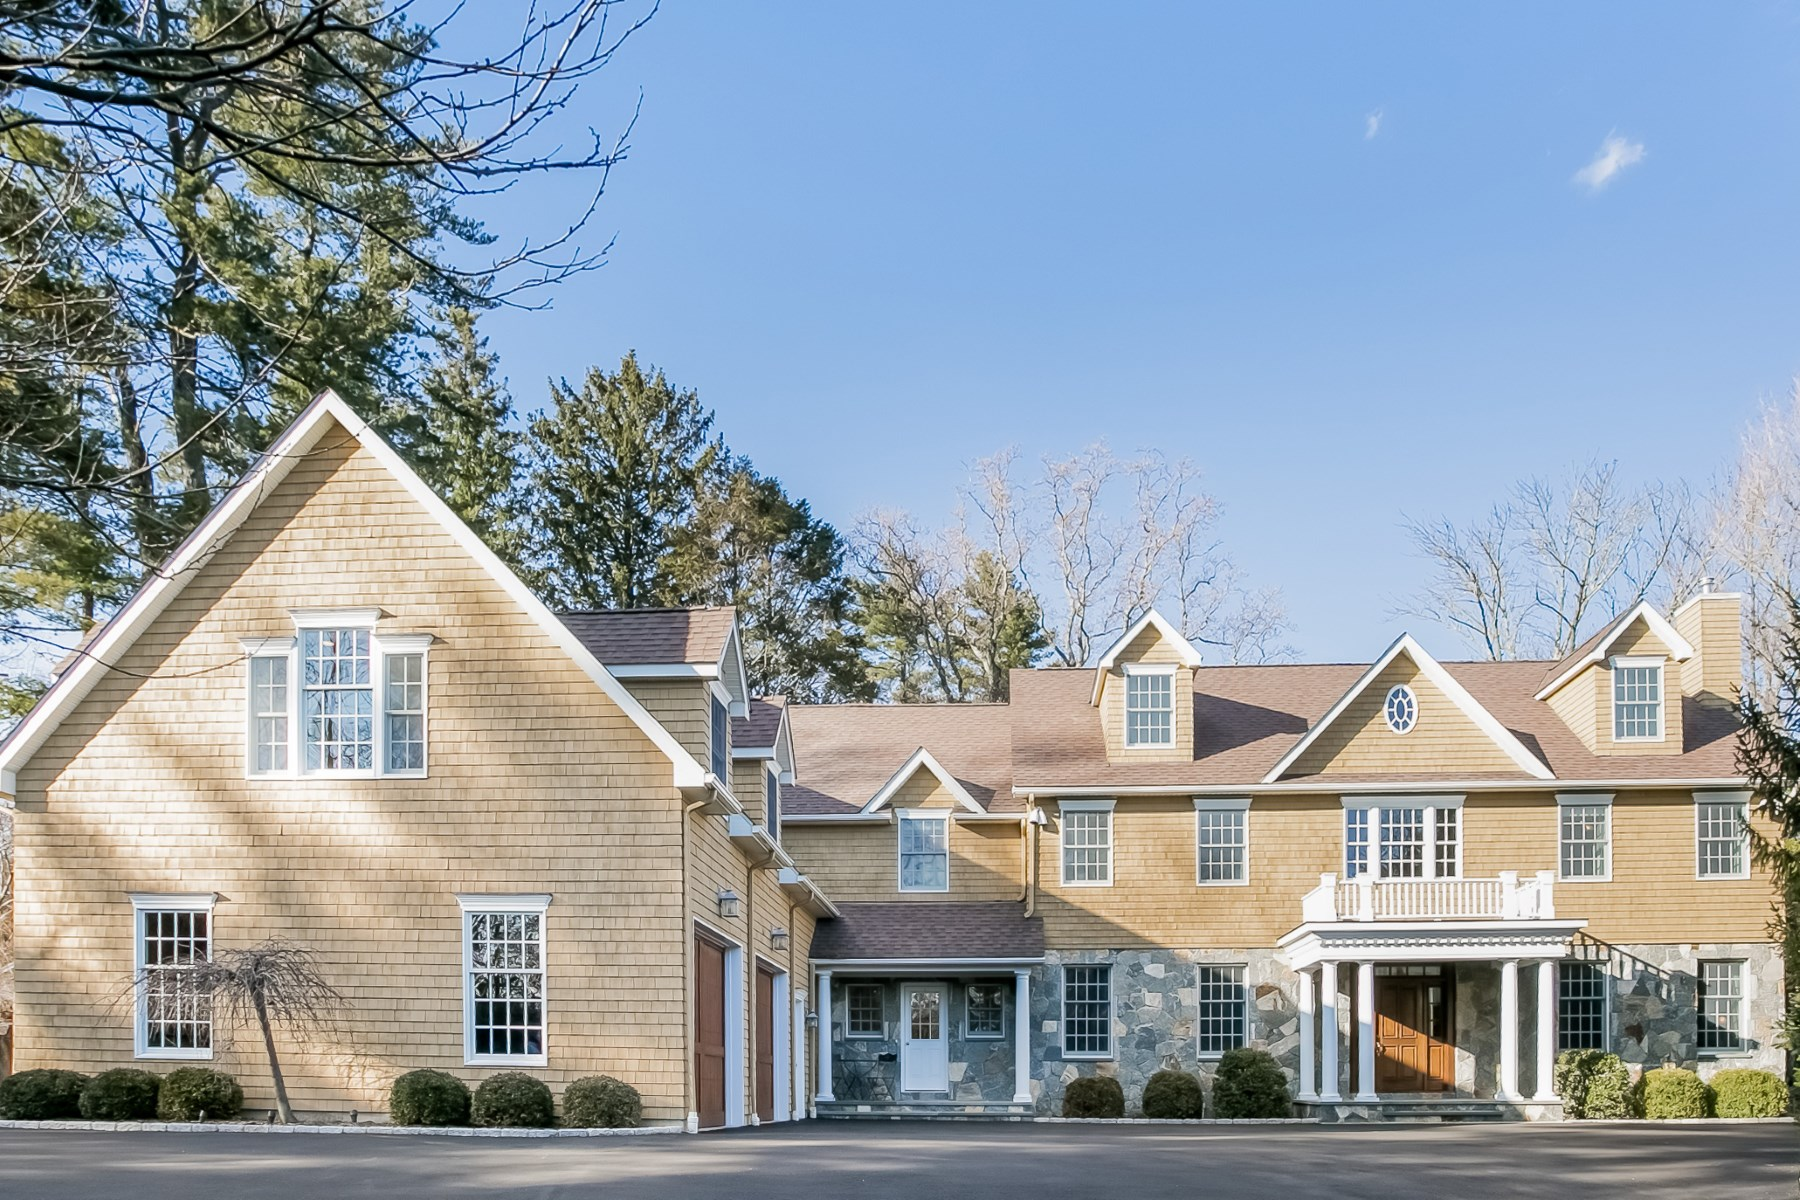 Single Family Home for Sale at Cat Rock Road Cos Cob, Connecticut, 06807 United States